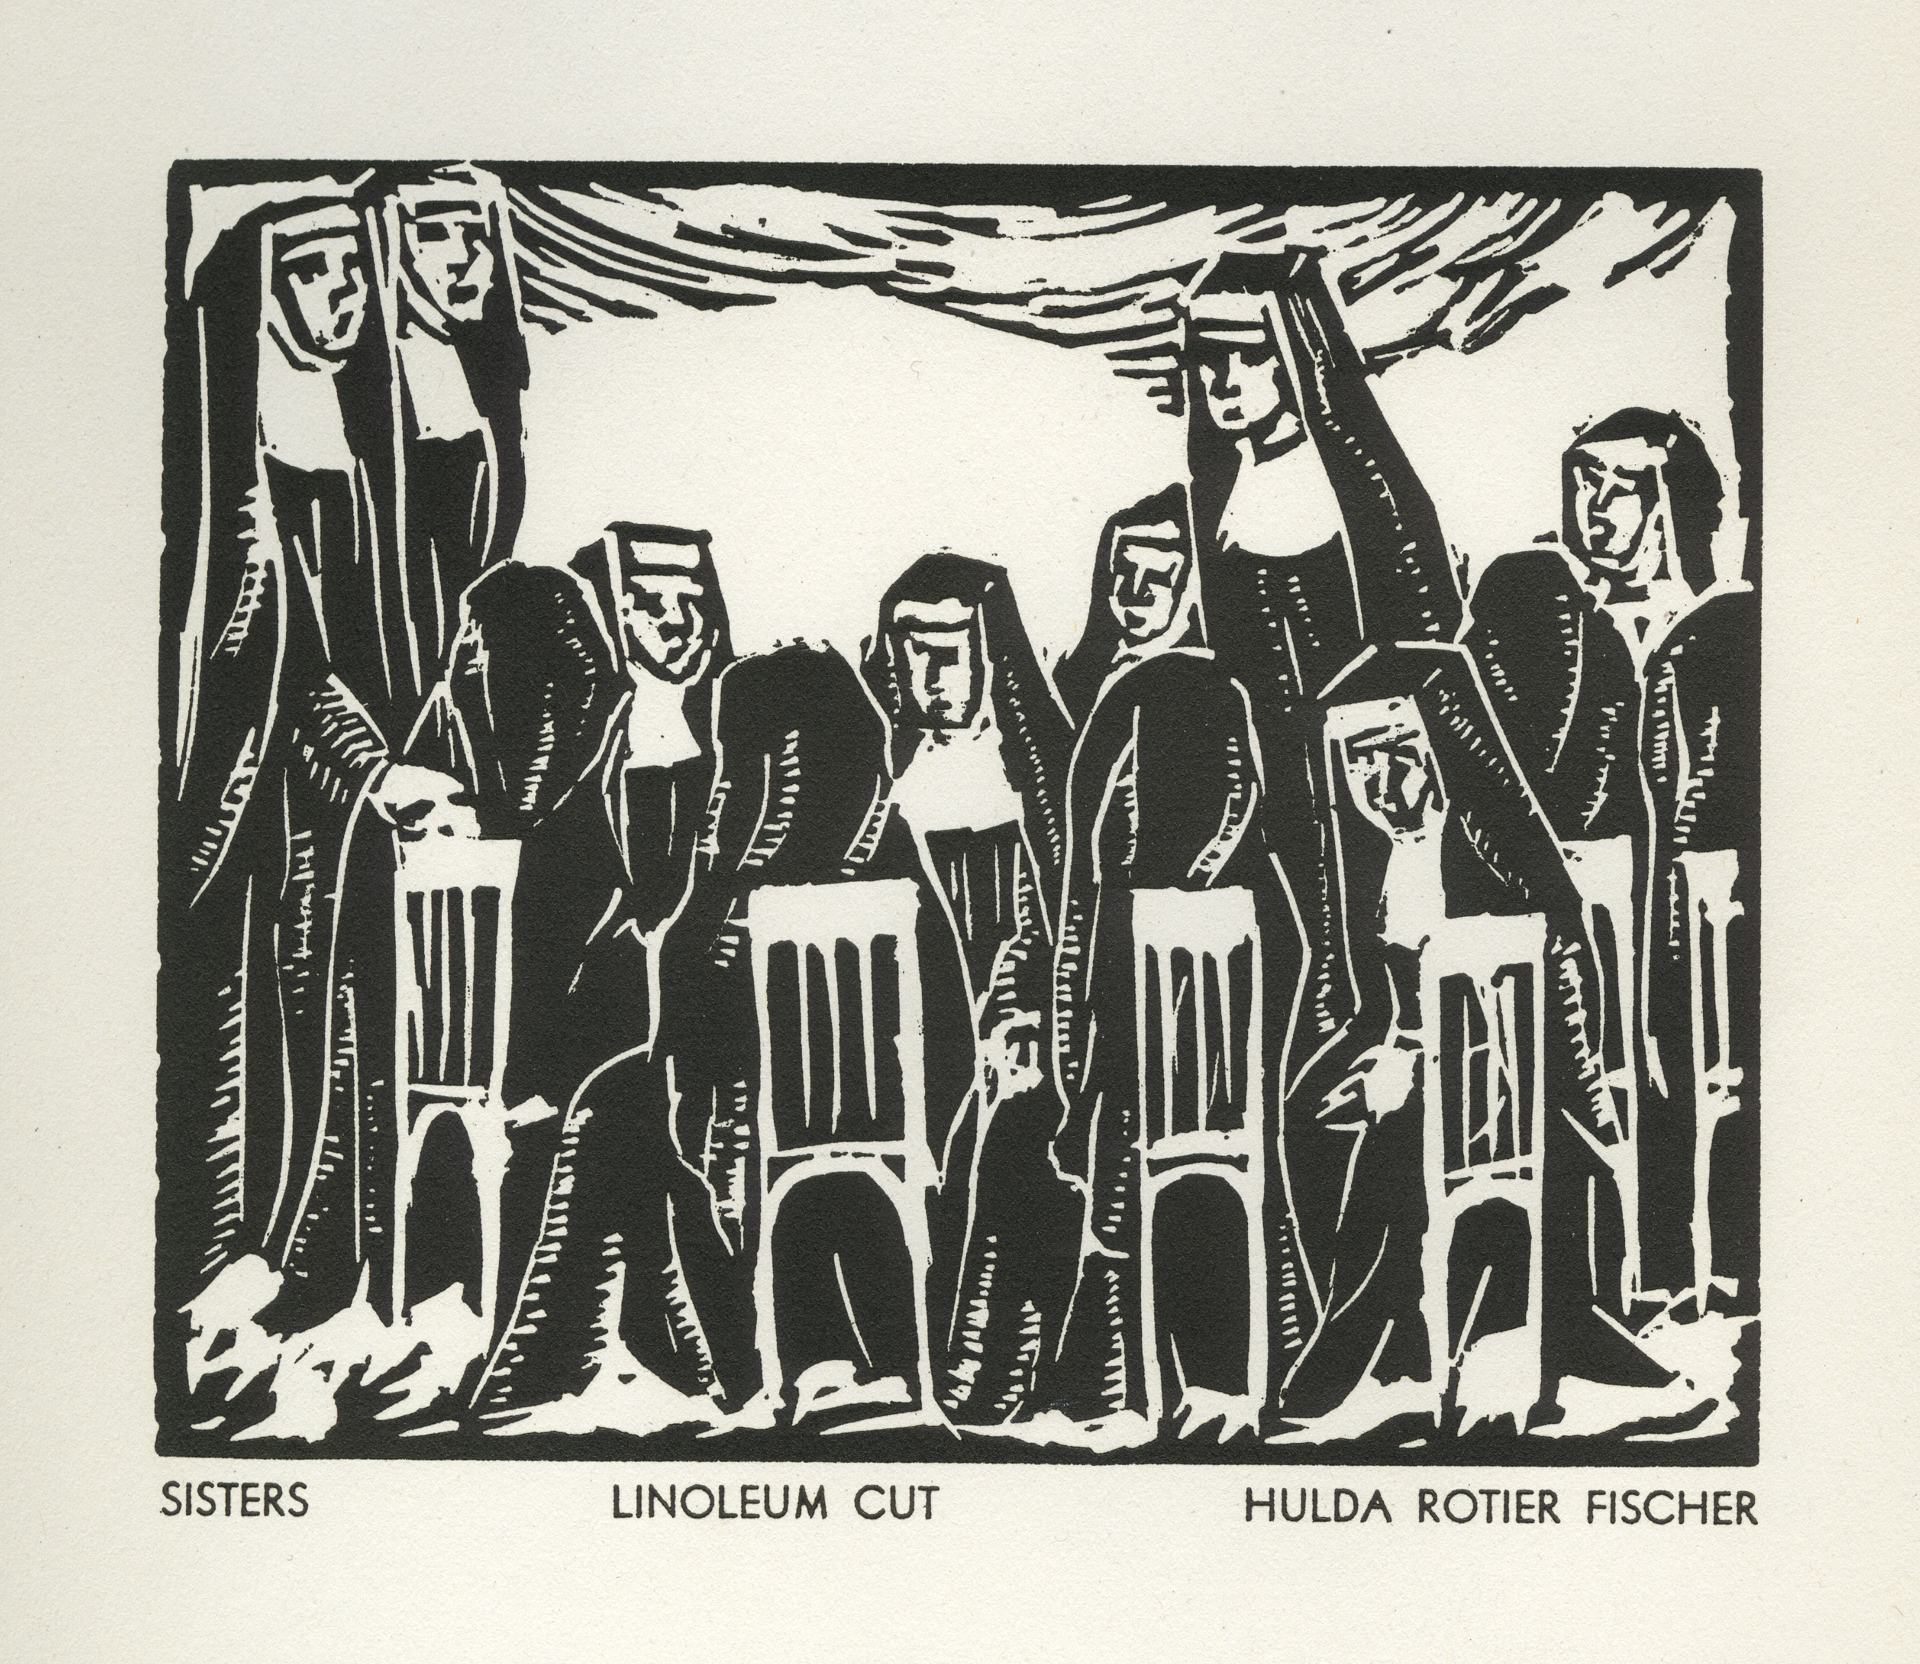 Sisters by Hulda Rotier Fischer